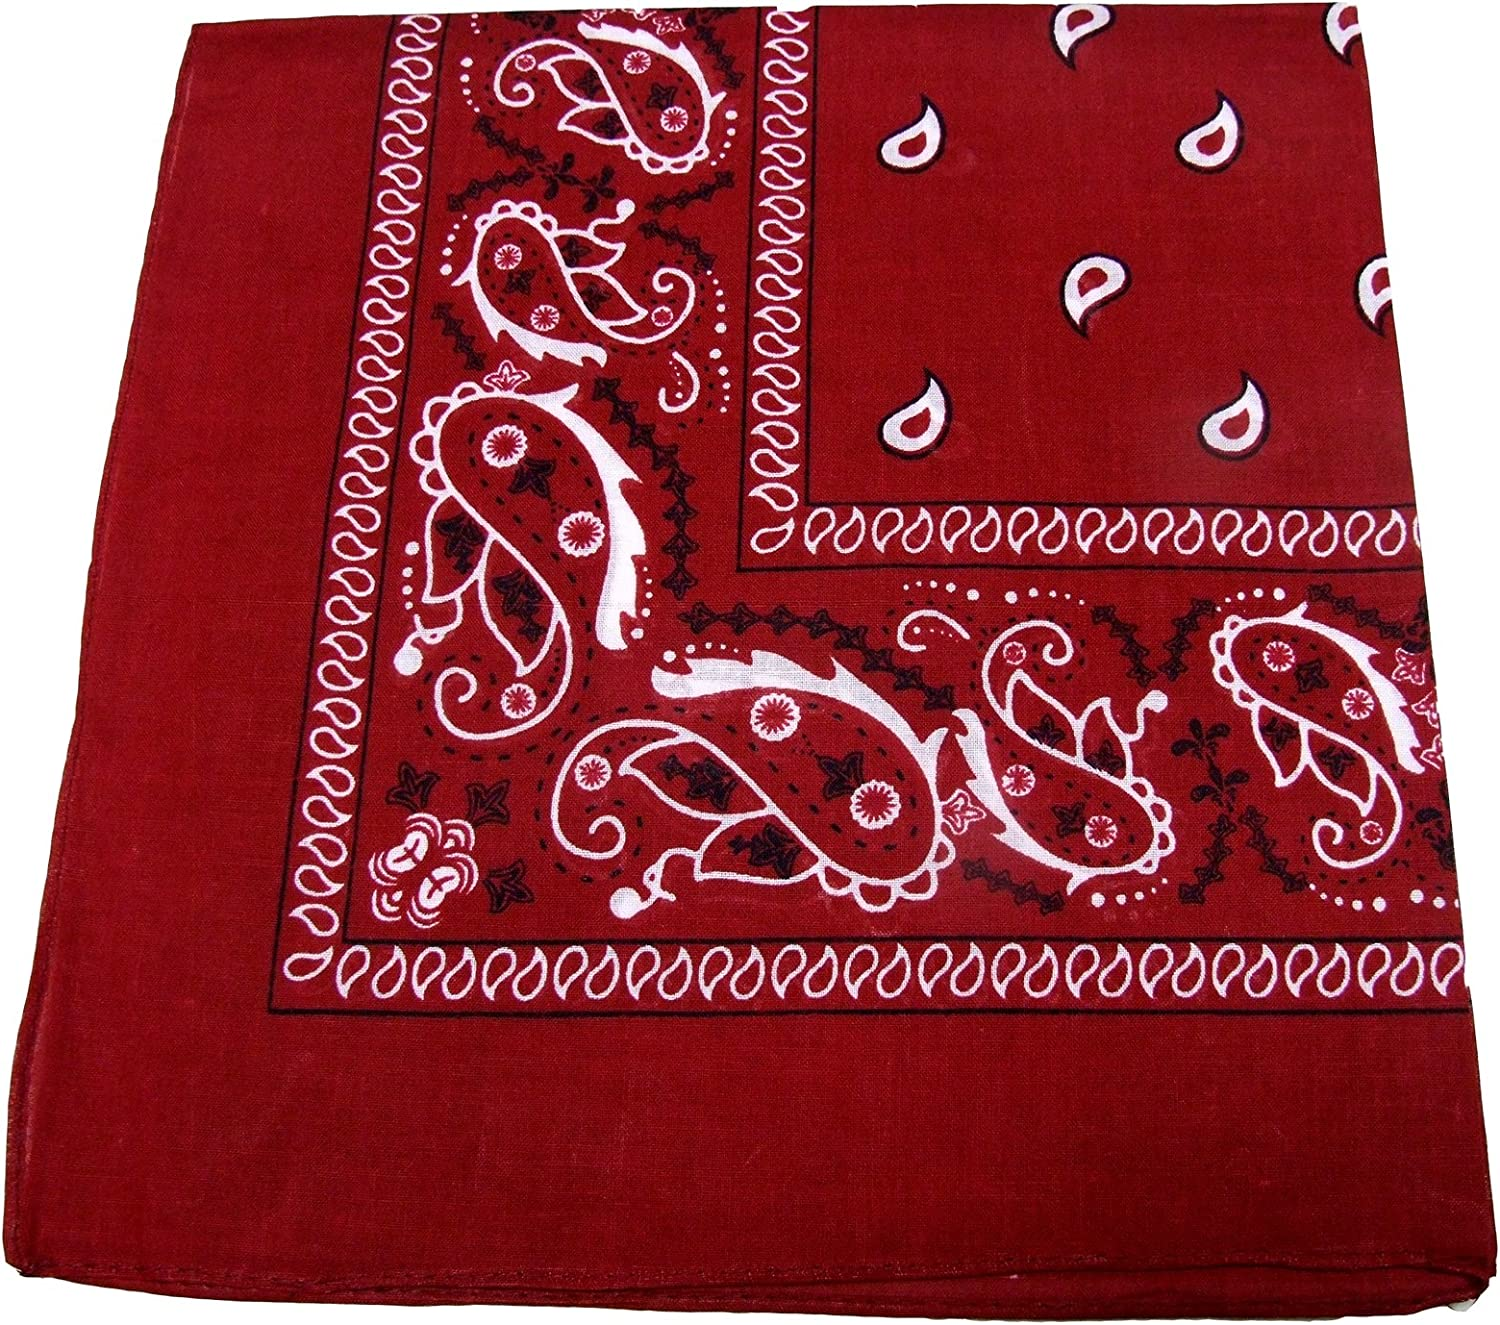 Pack of 12 Cotton Double Sided Print Paisley Bandana Scarf,22x22 Head Wrap